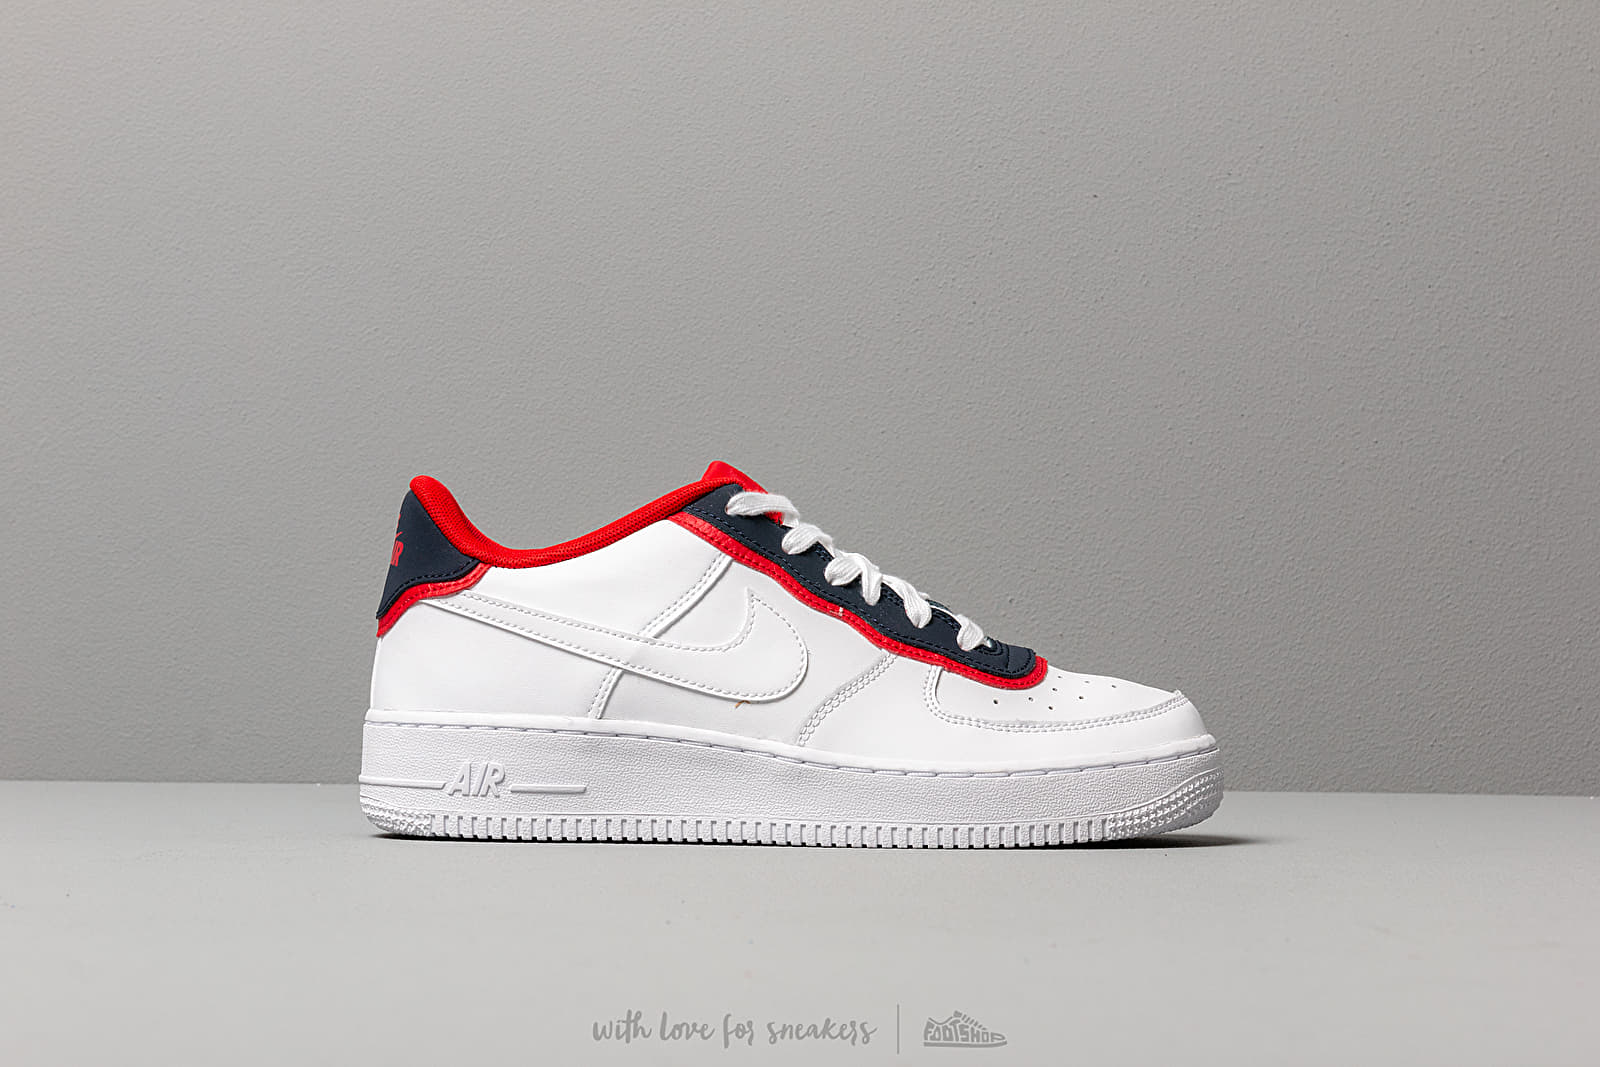 reputable site 68852 ed726 Nike Air Force 1 Lv8 1 Dbl Gs White  White-Obsidian-University Red